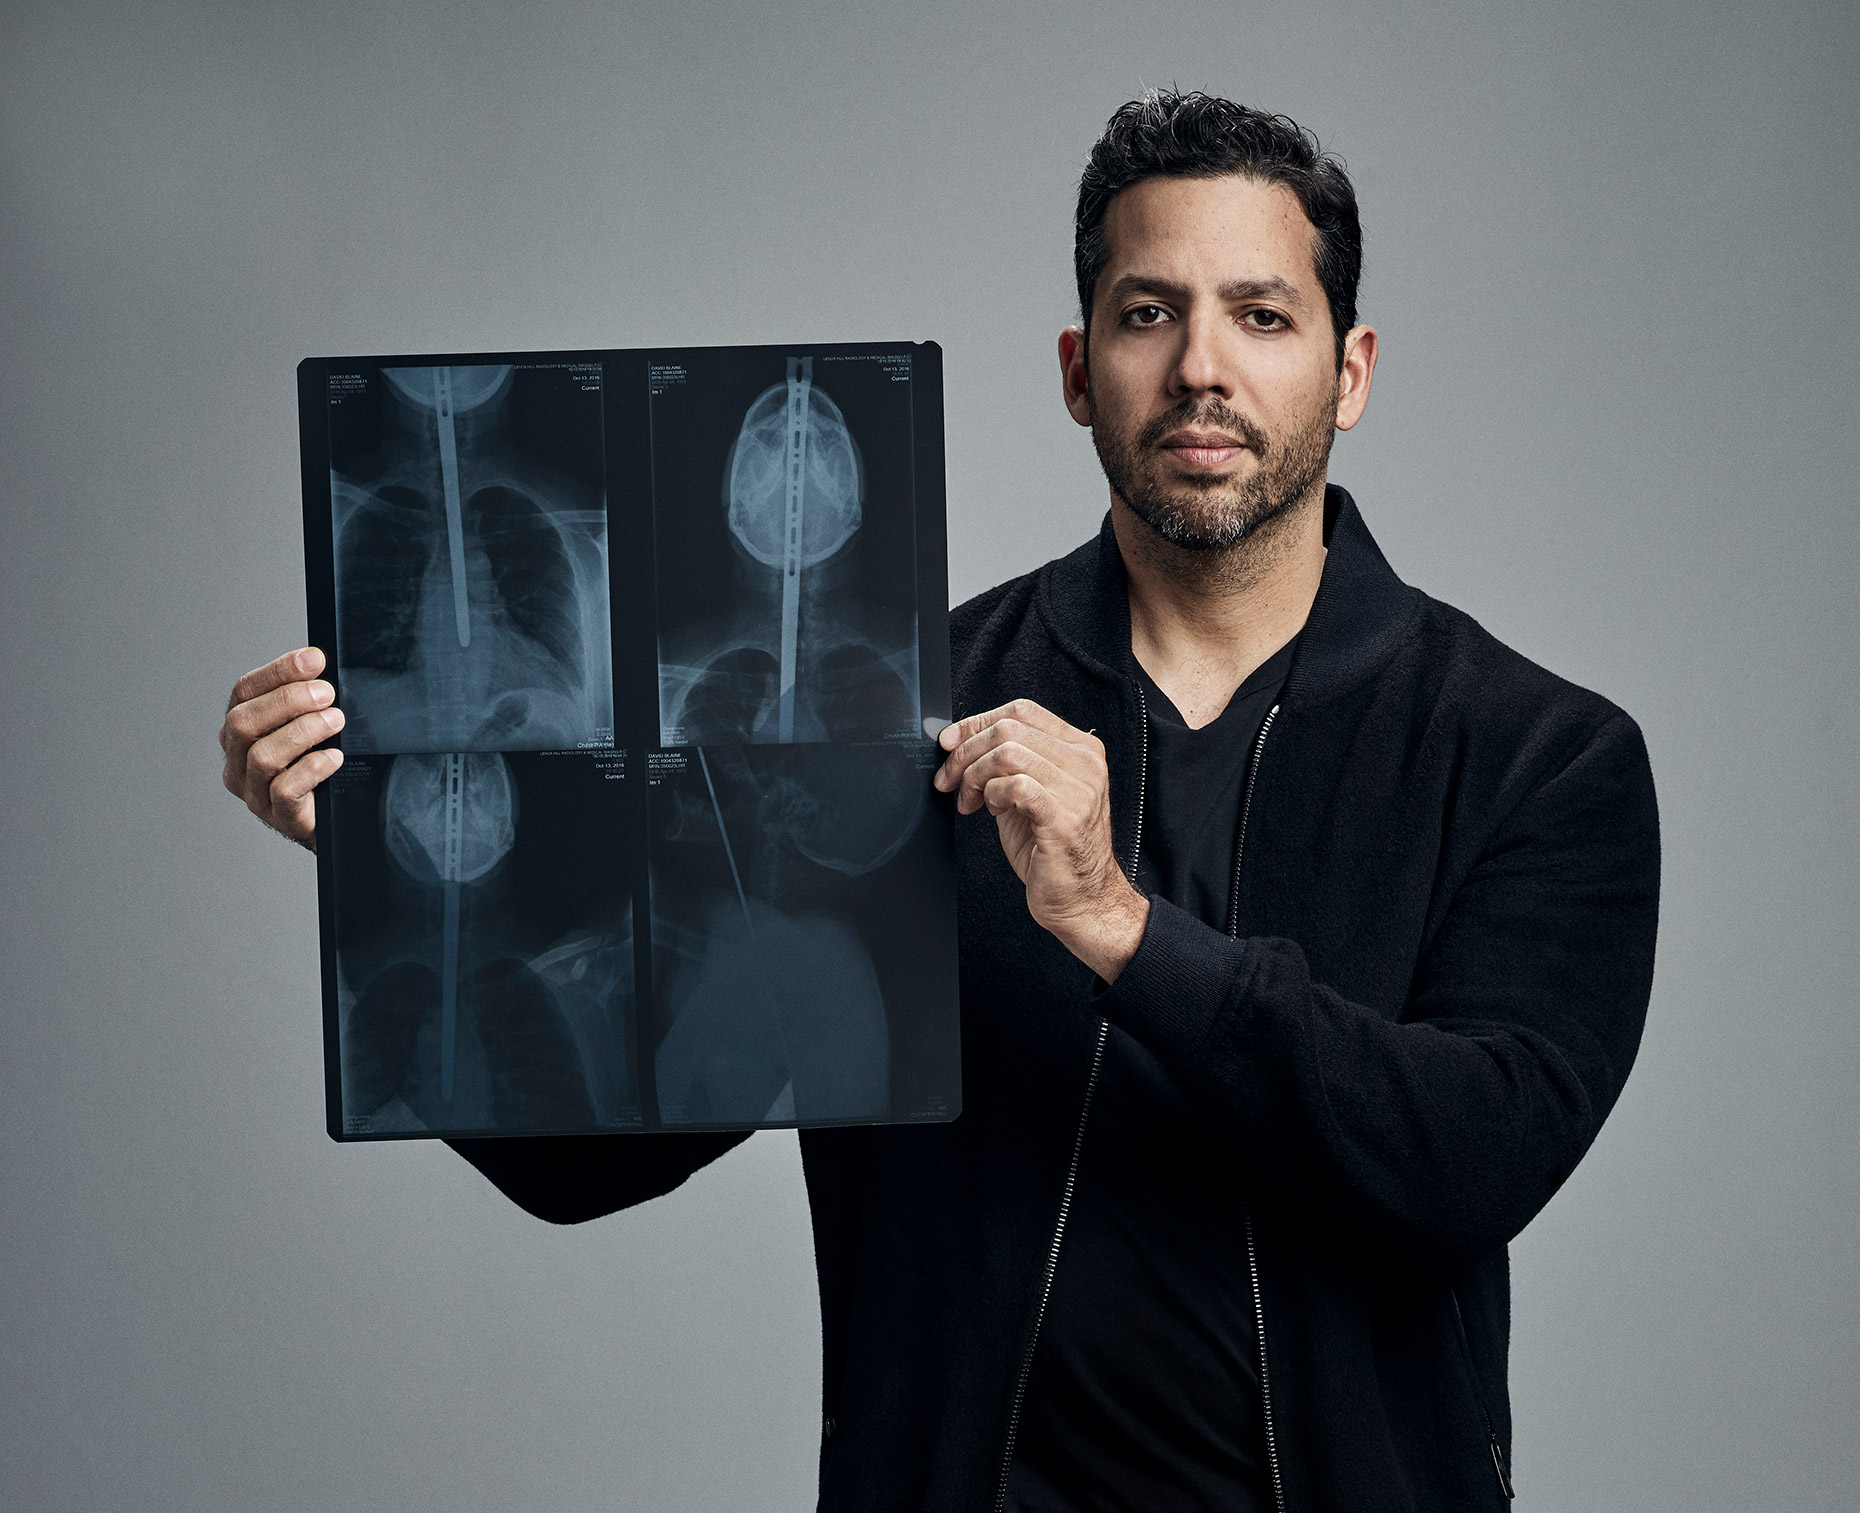 03_David-Blaine-Grey_0670